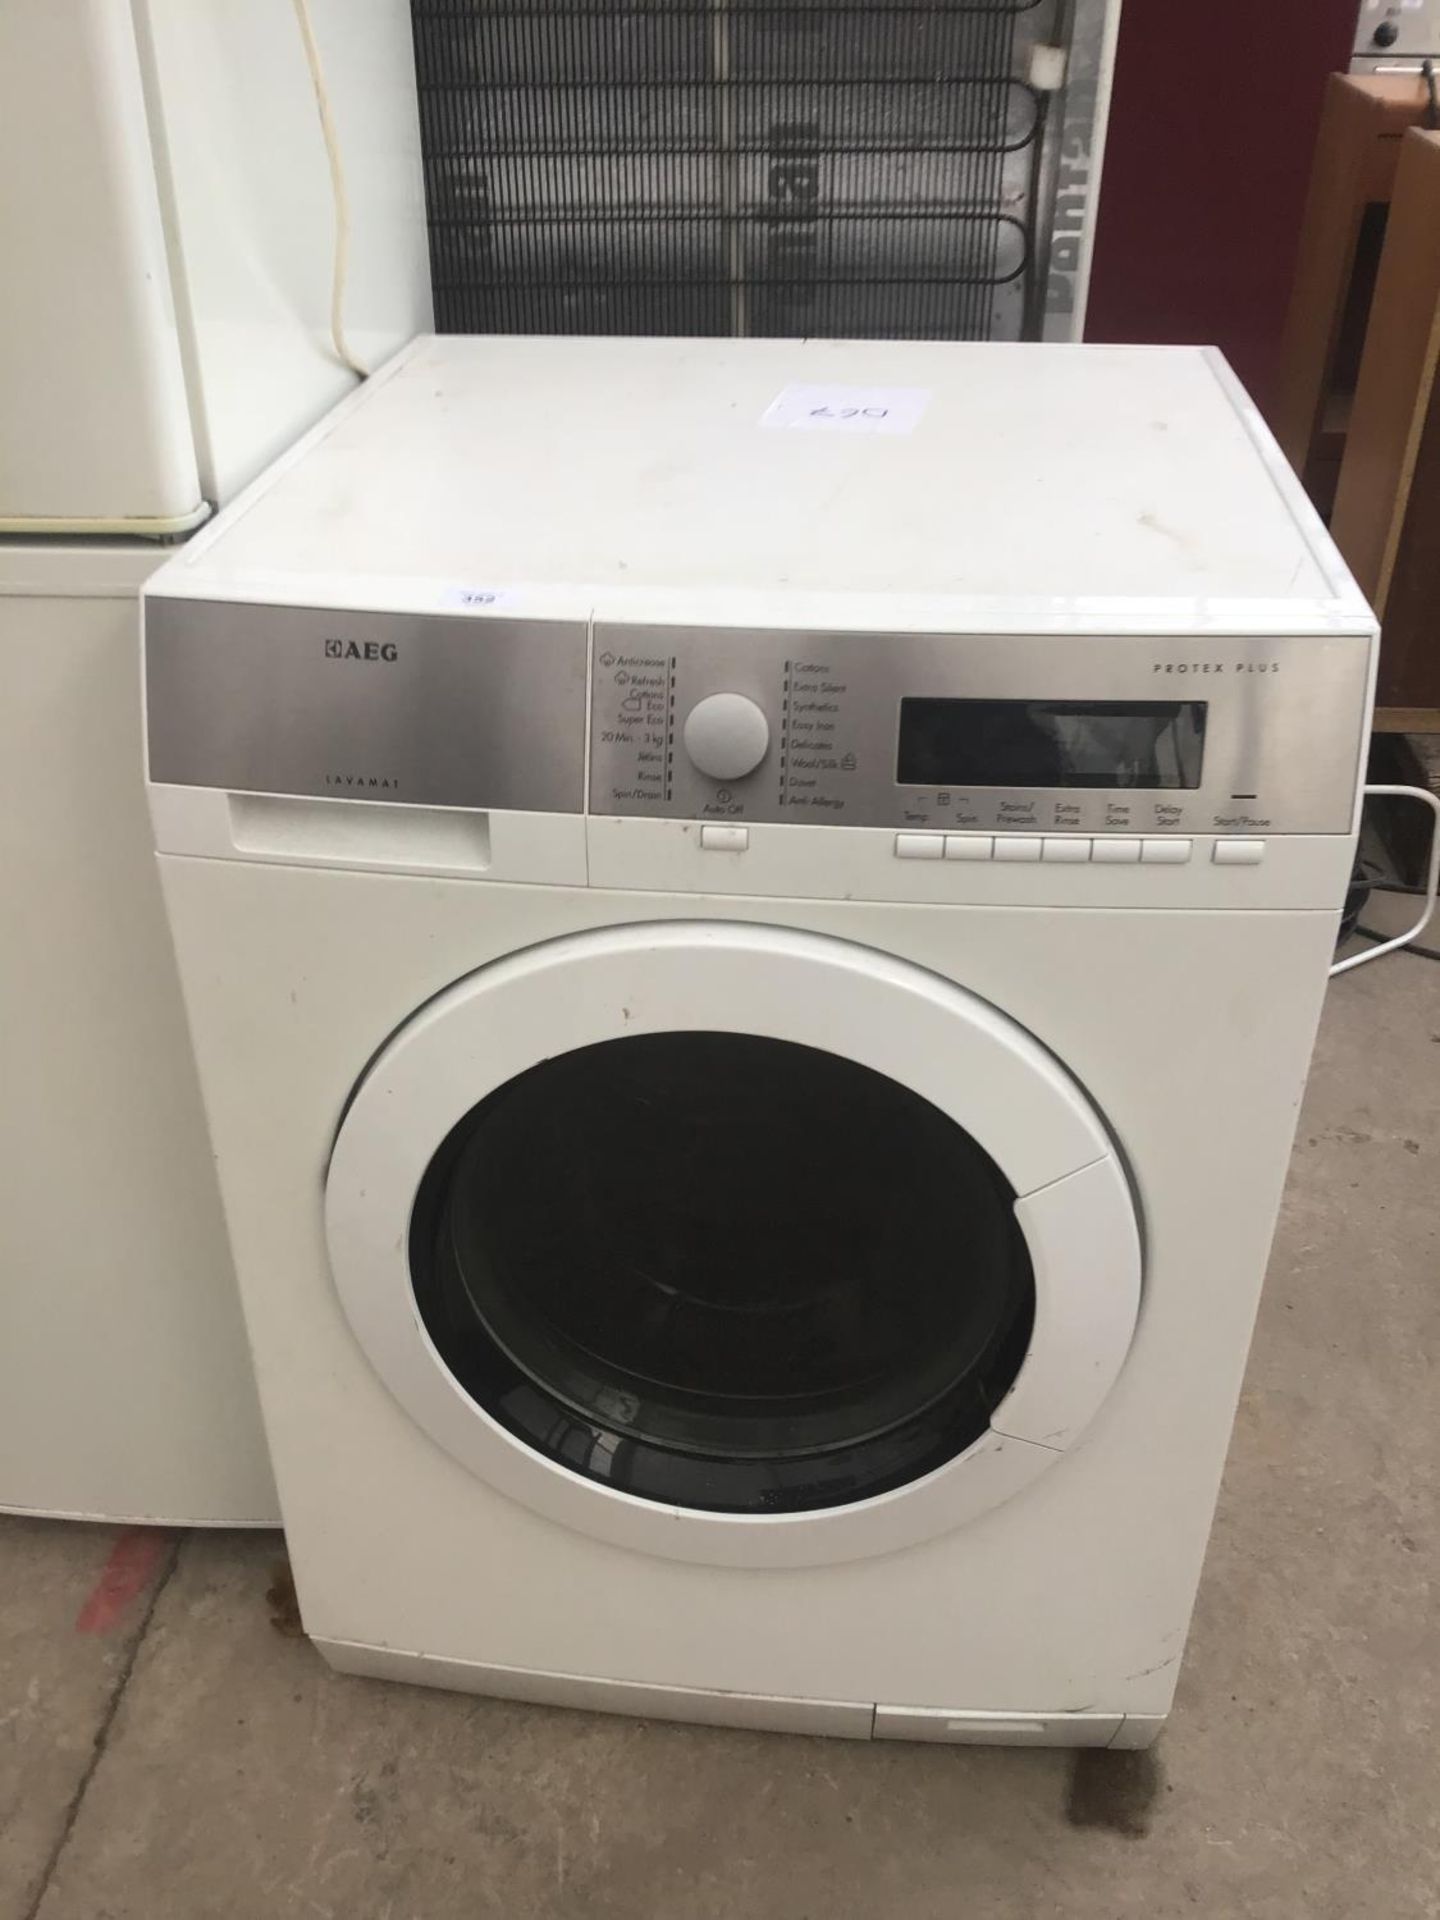 Lot 352 - A PROTEX PLUS WASHER IN WORKING ORDER